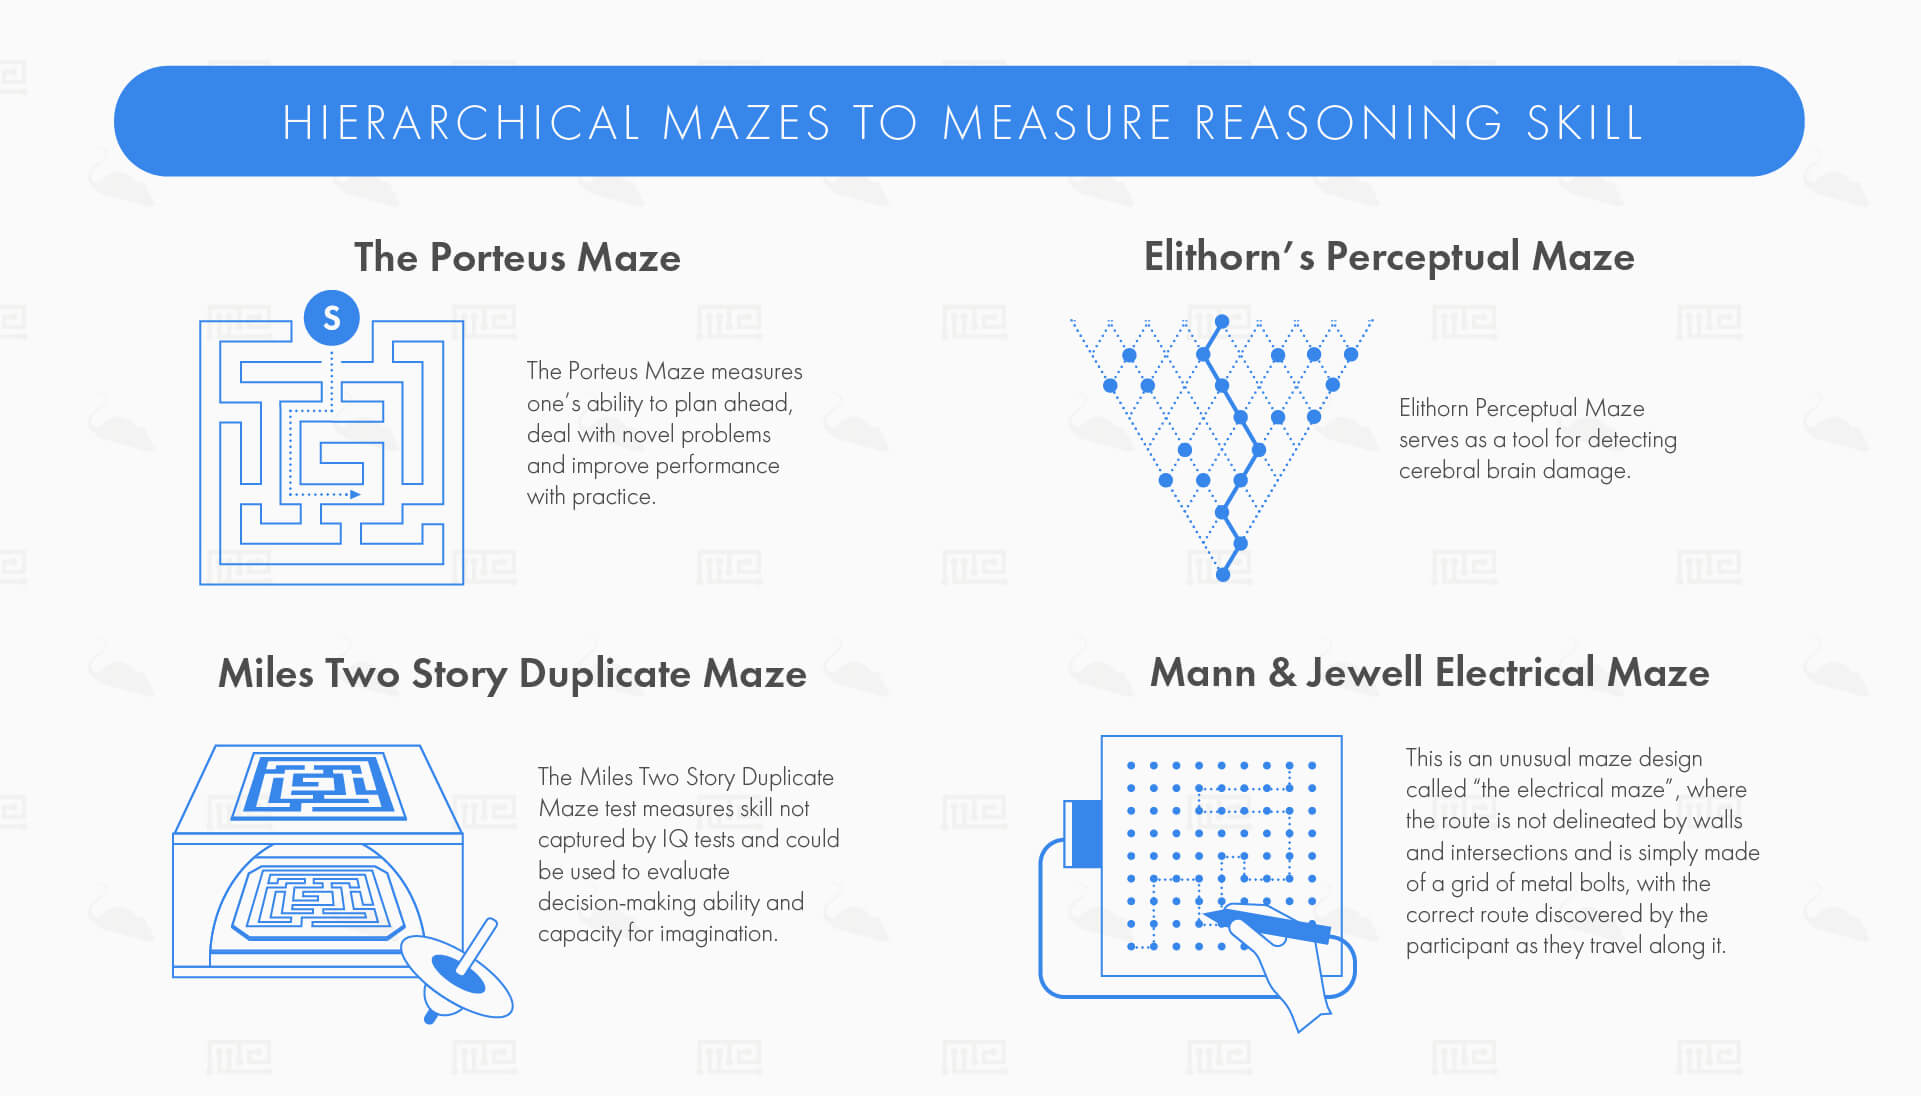 Hierarchical Mazes to Measure Reasoning Skill